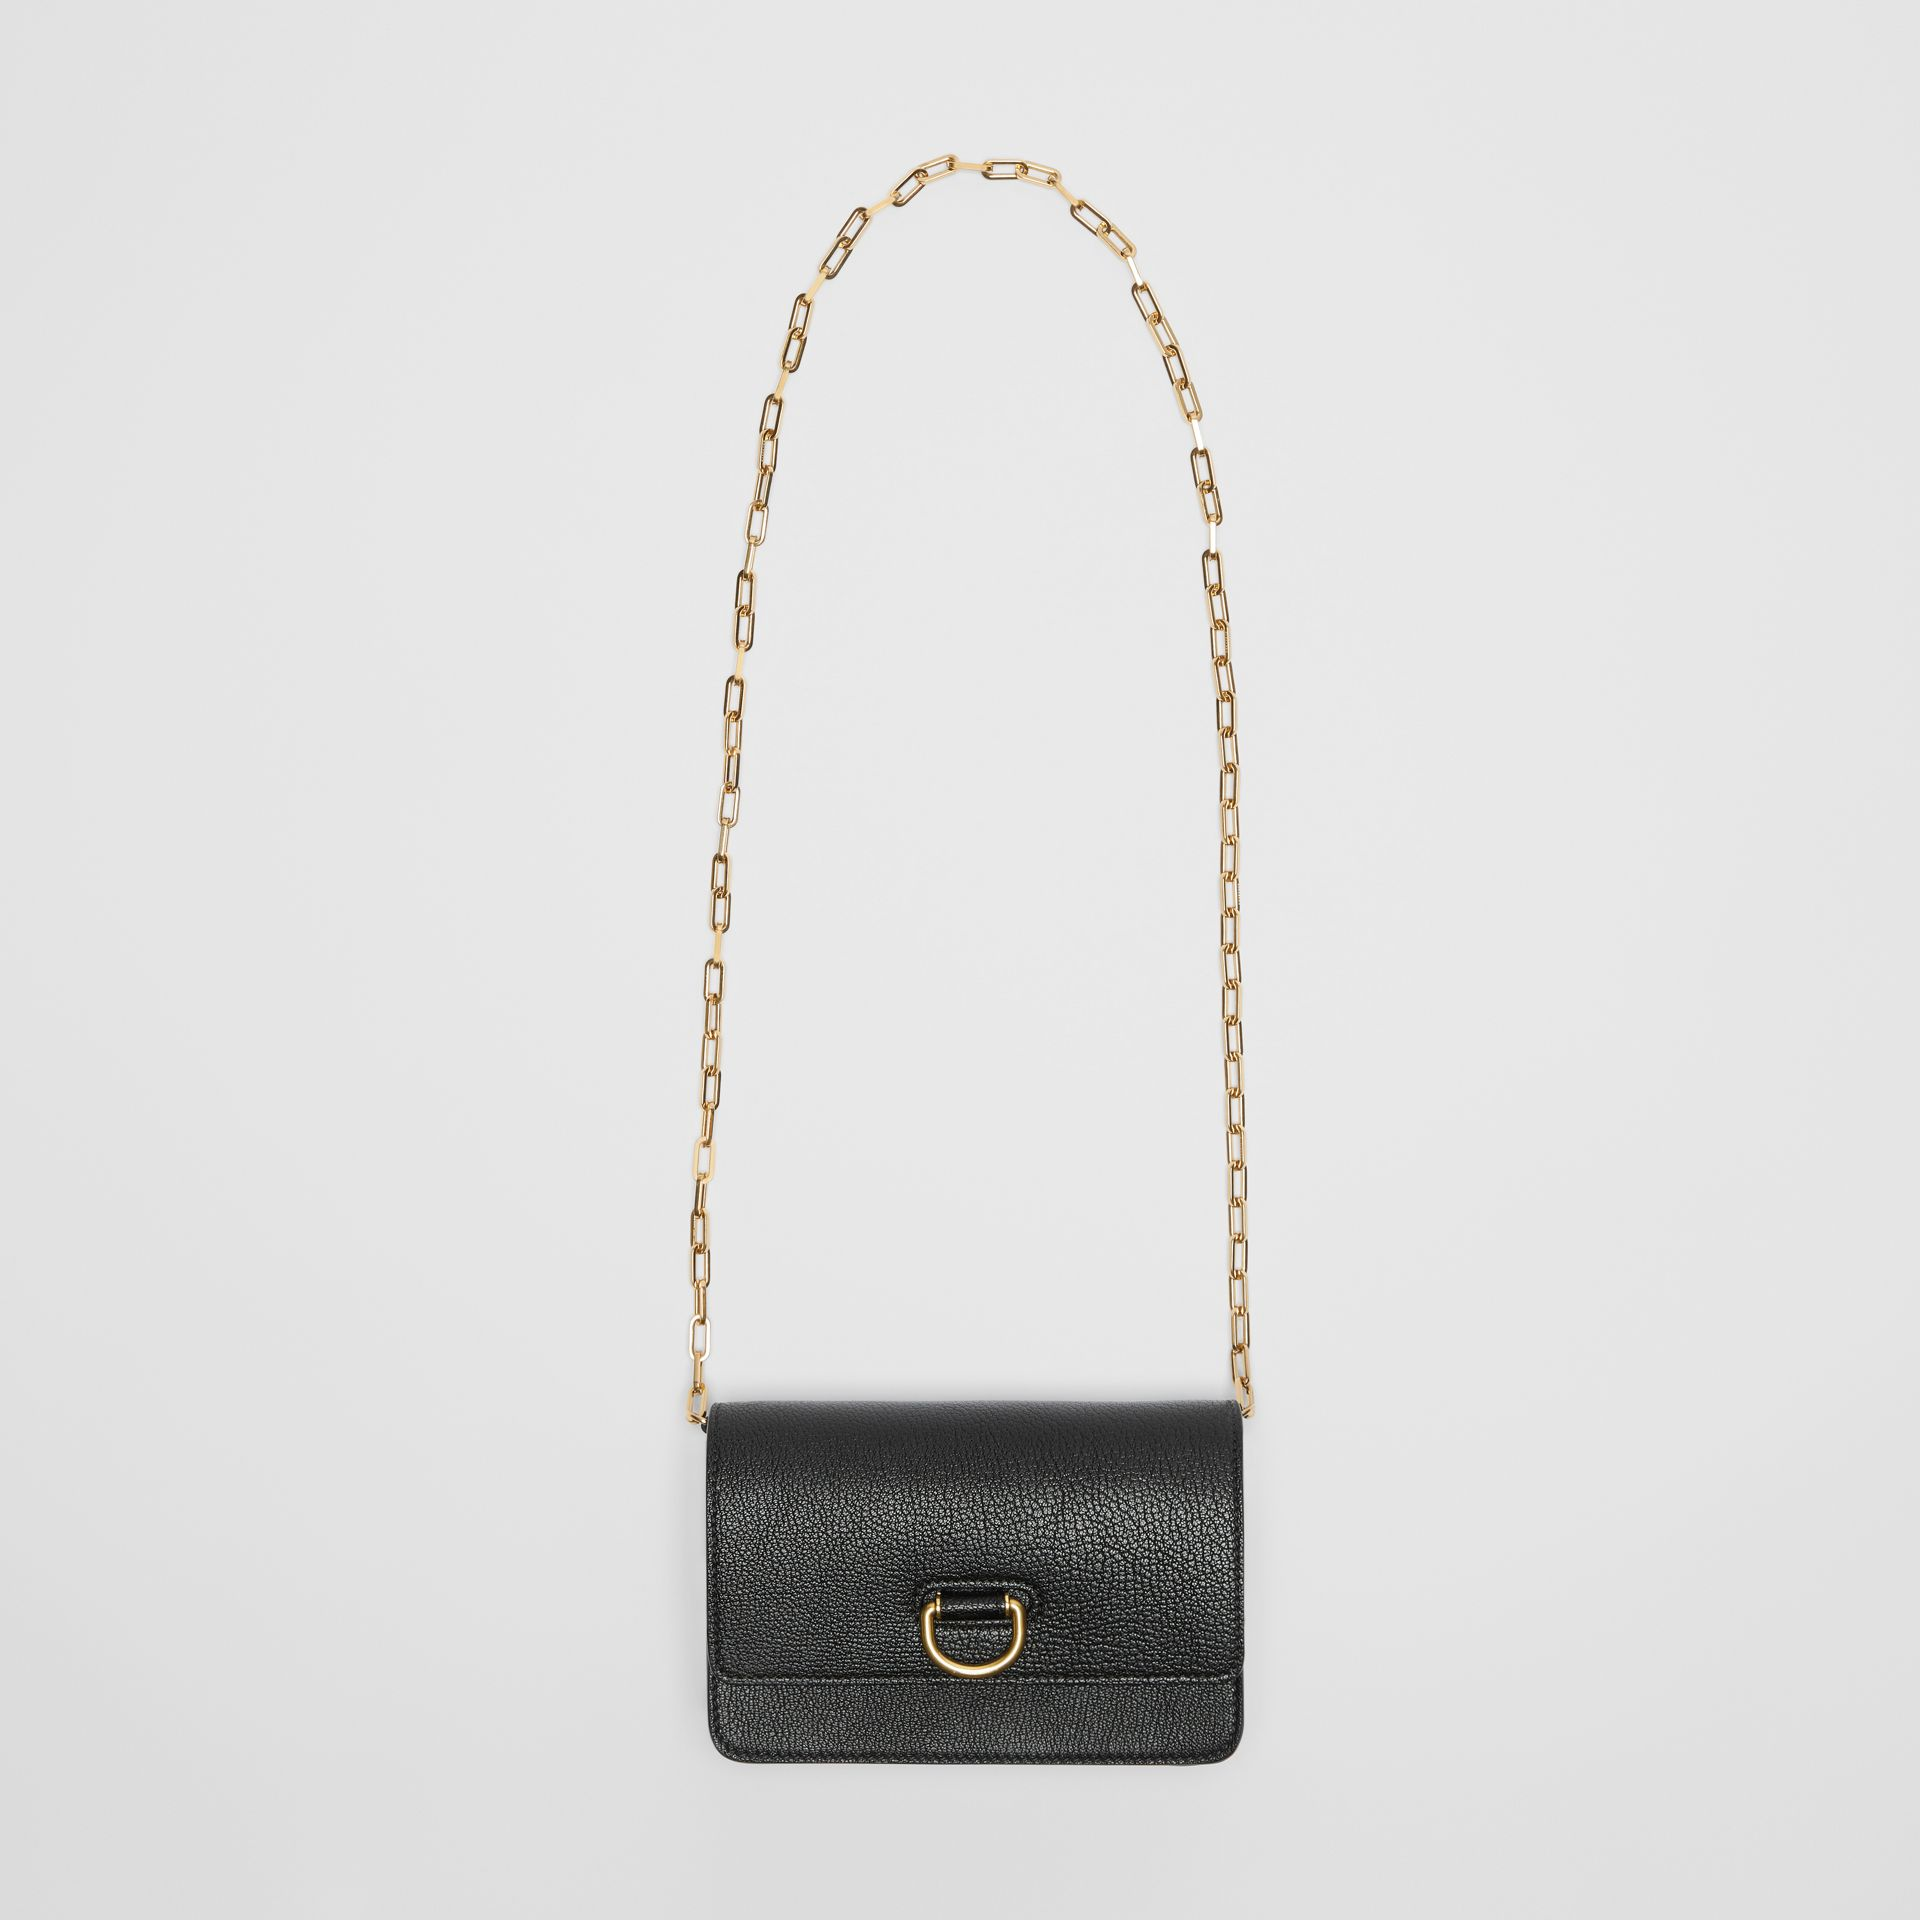 Borsa The D-ring mini in pelle (Nero) - Donna | Burberry - immagine della galleria 2